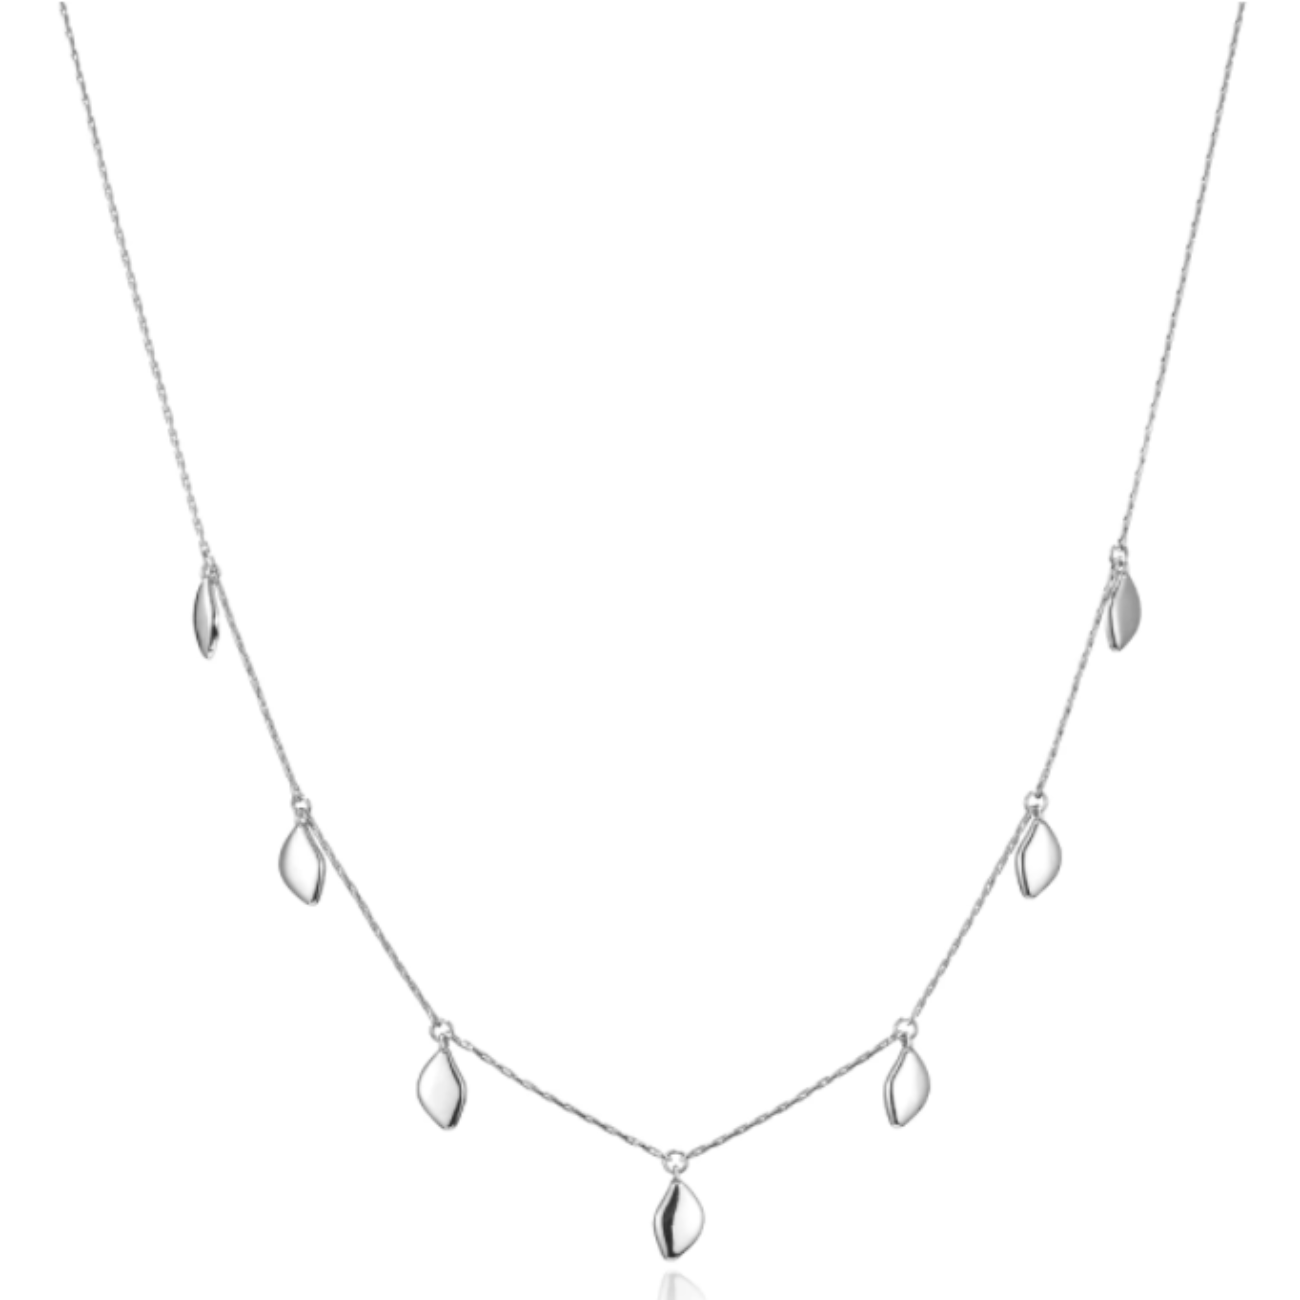 JENNY BIRD - FOLI NECKLACE IN SILVER